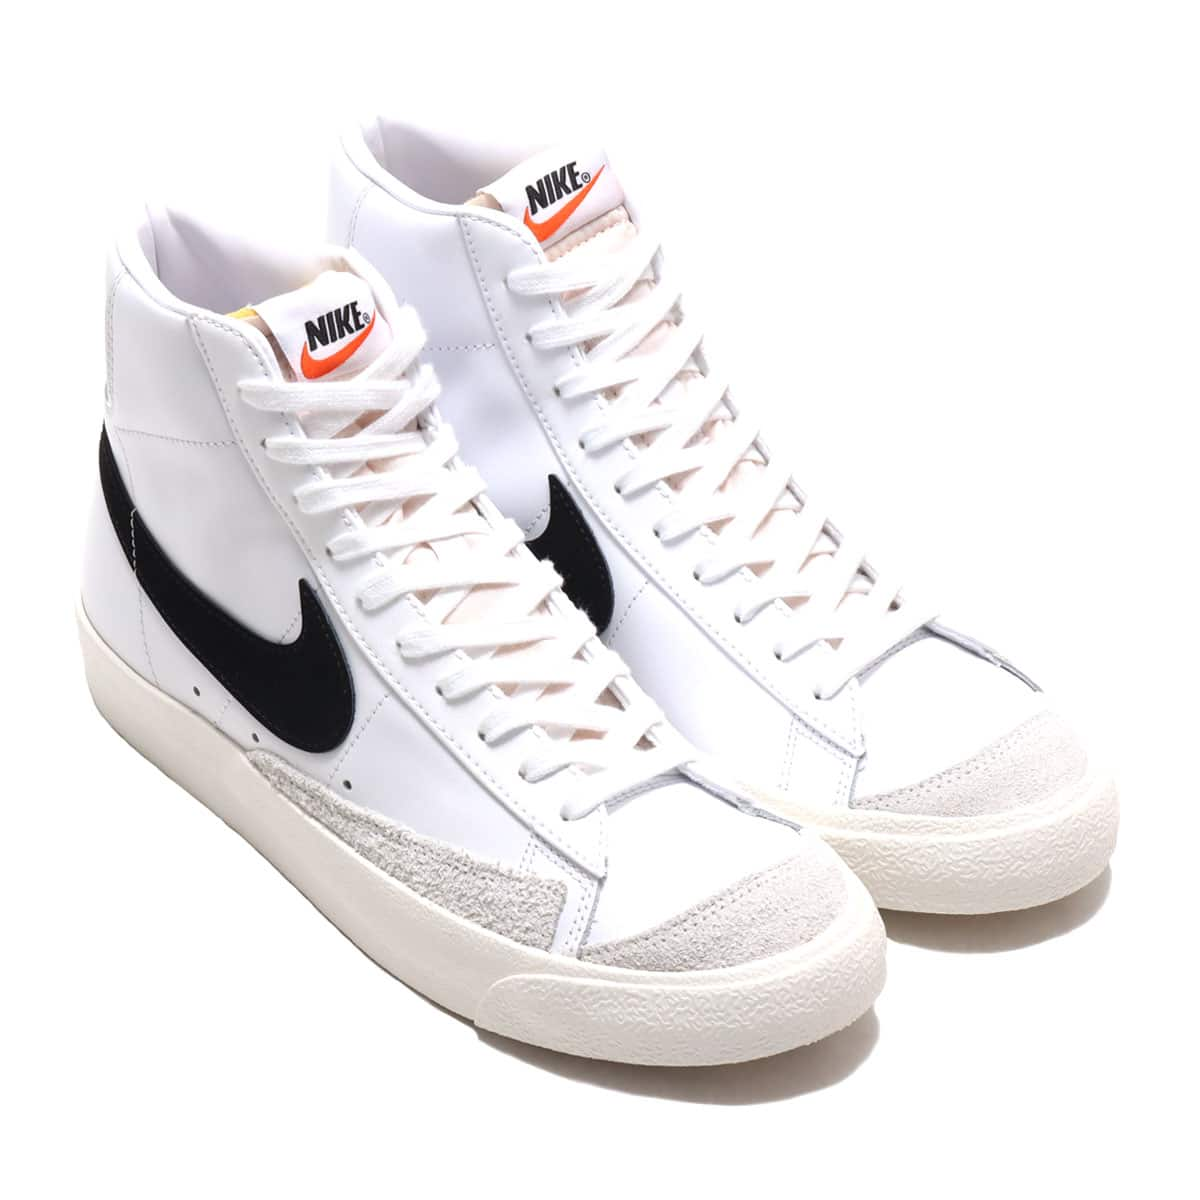 NIKE BLAZER MID '77 VNTG WHITE/BLACK 21SP-I_photo_large